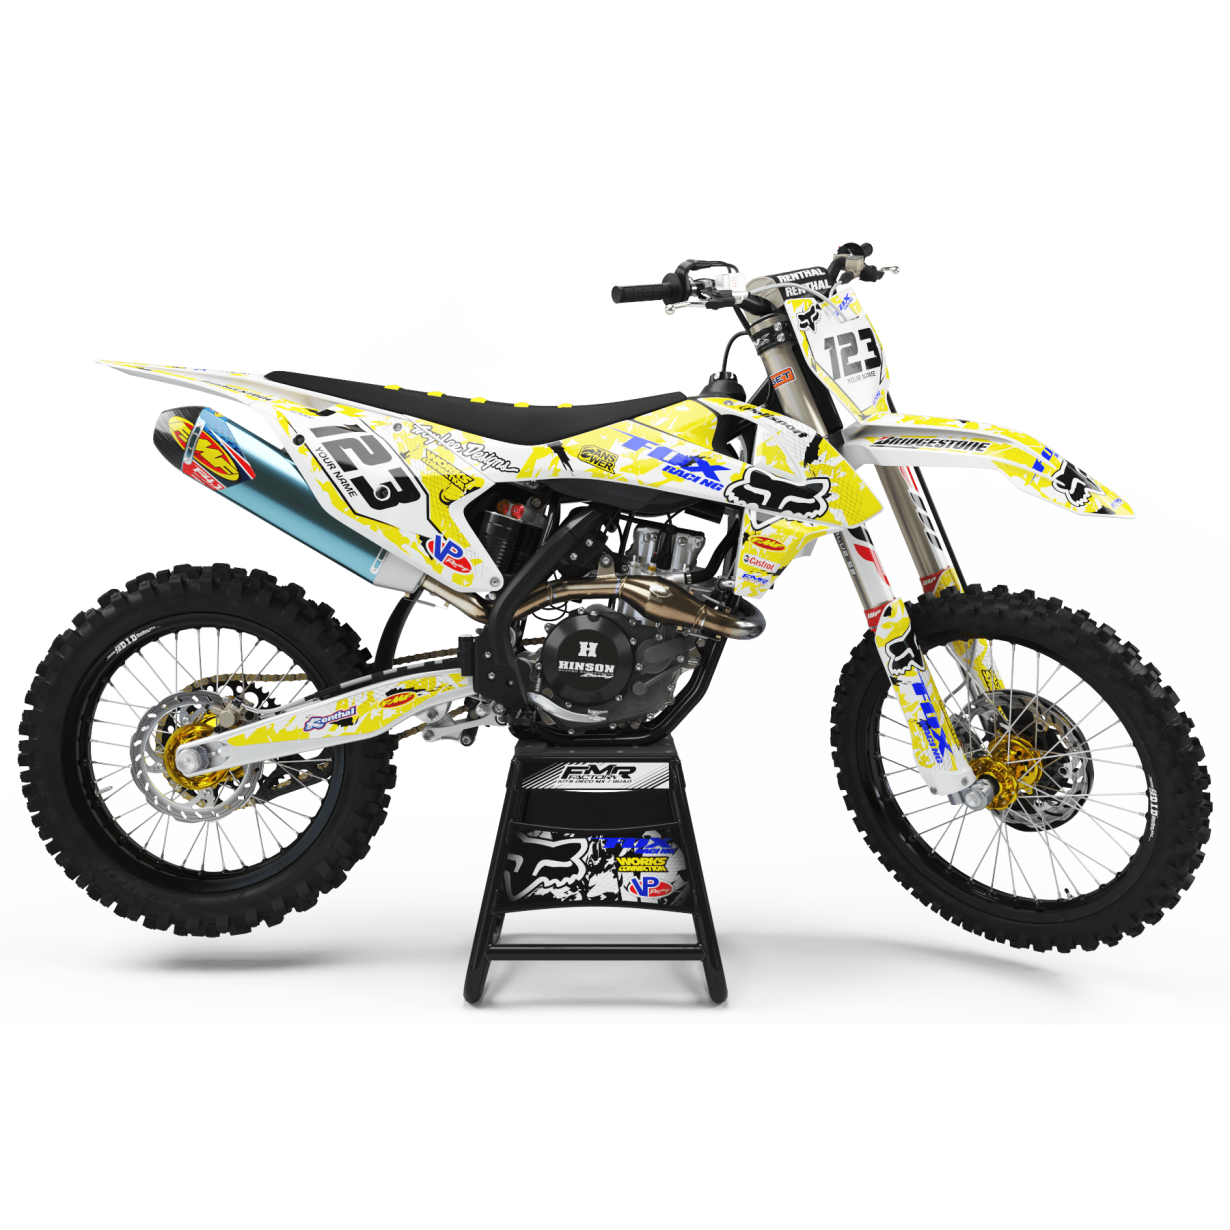 Kit deco Perso FOX MA9D jaune